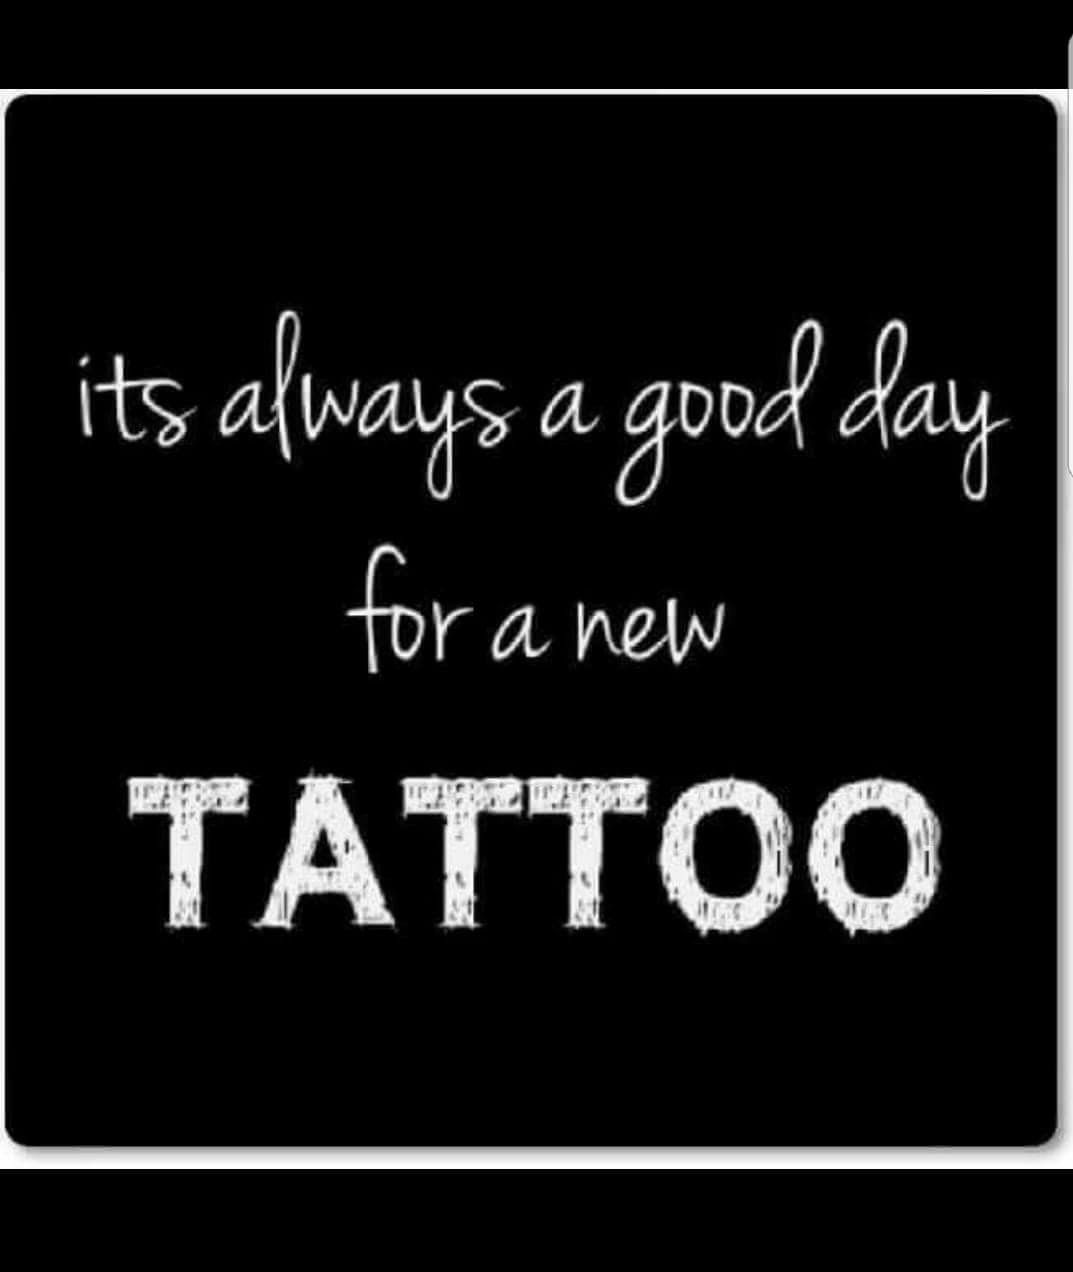 Tattoo Humor Quotes: Today Is The Day... But It's Only The Beginning, Lol